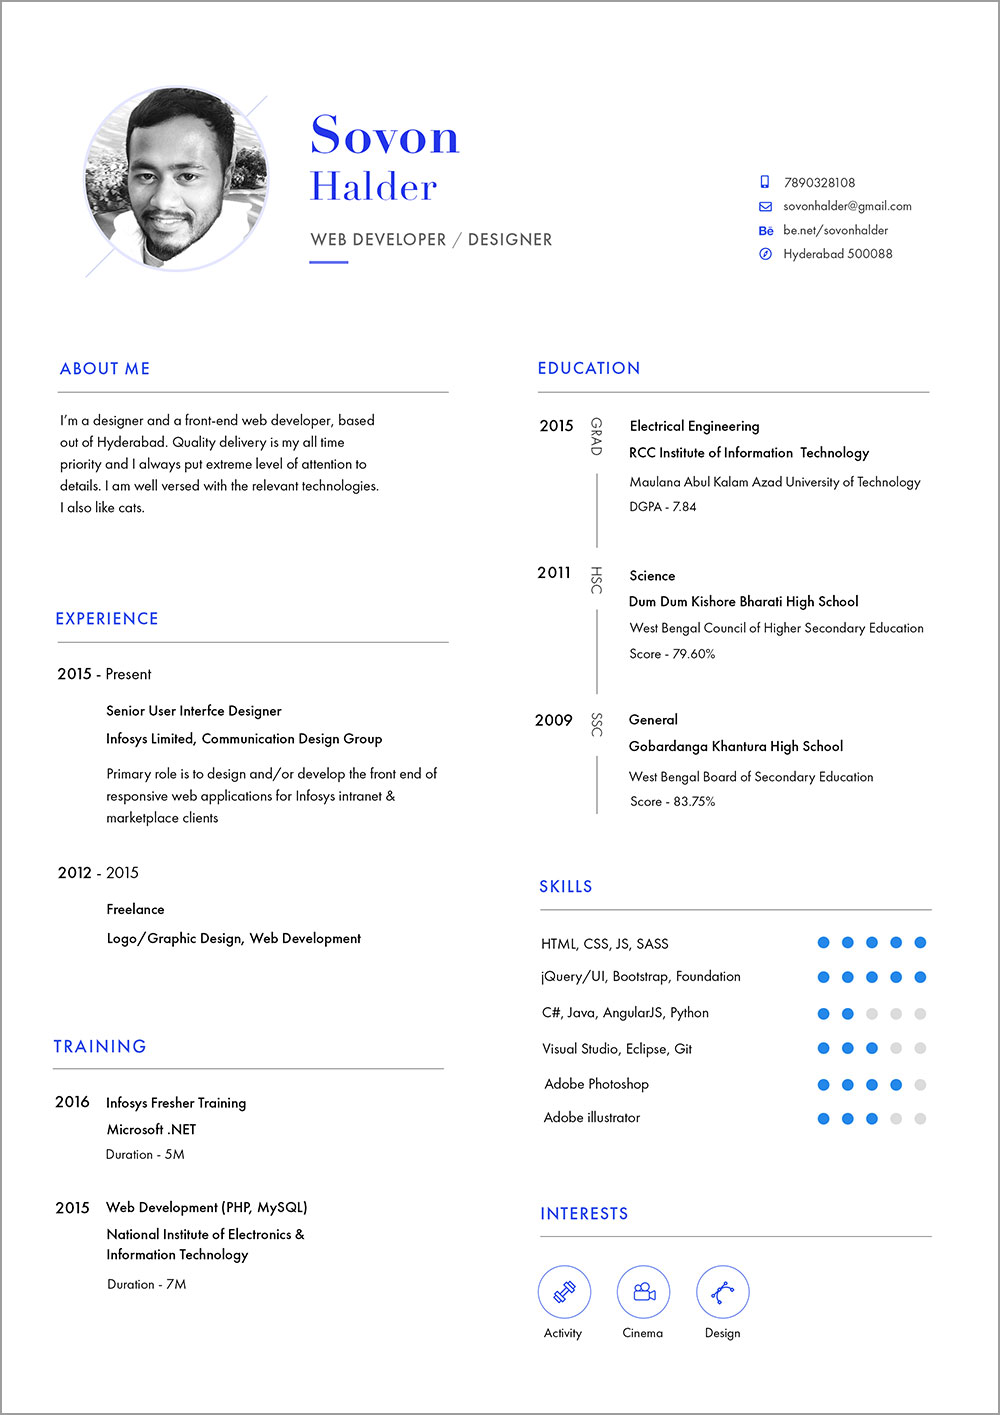 Free-CV-Resume-Template-in-PSD-&-Ai-For-Web-Developer